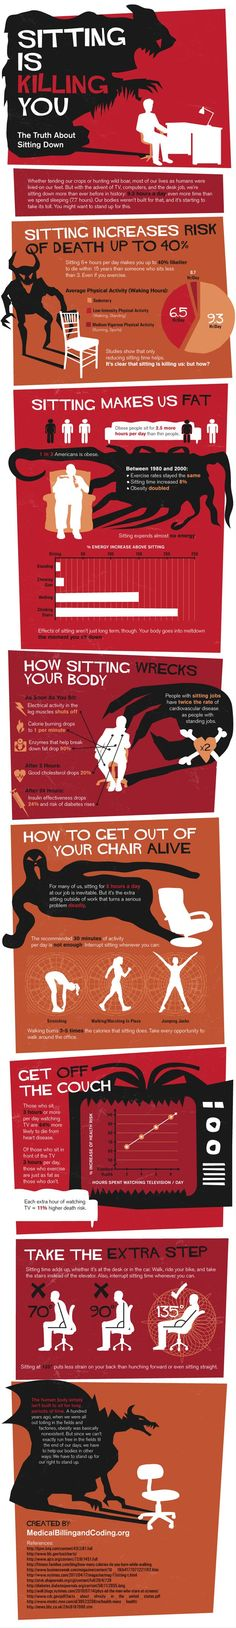 The #infographic poster uncovers the truth behind sitting down and how sitting can kill you.